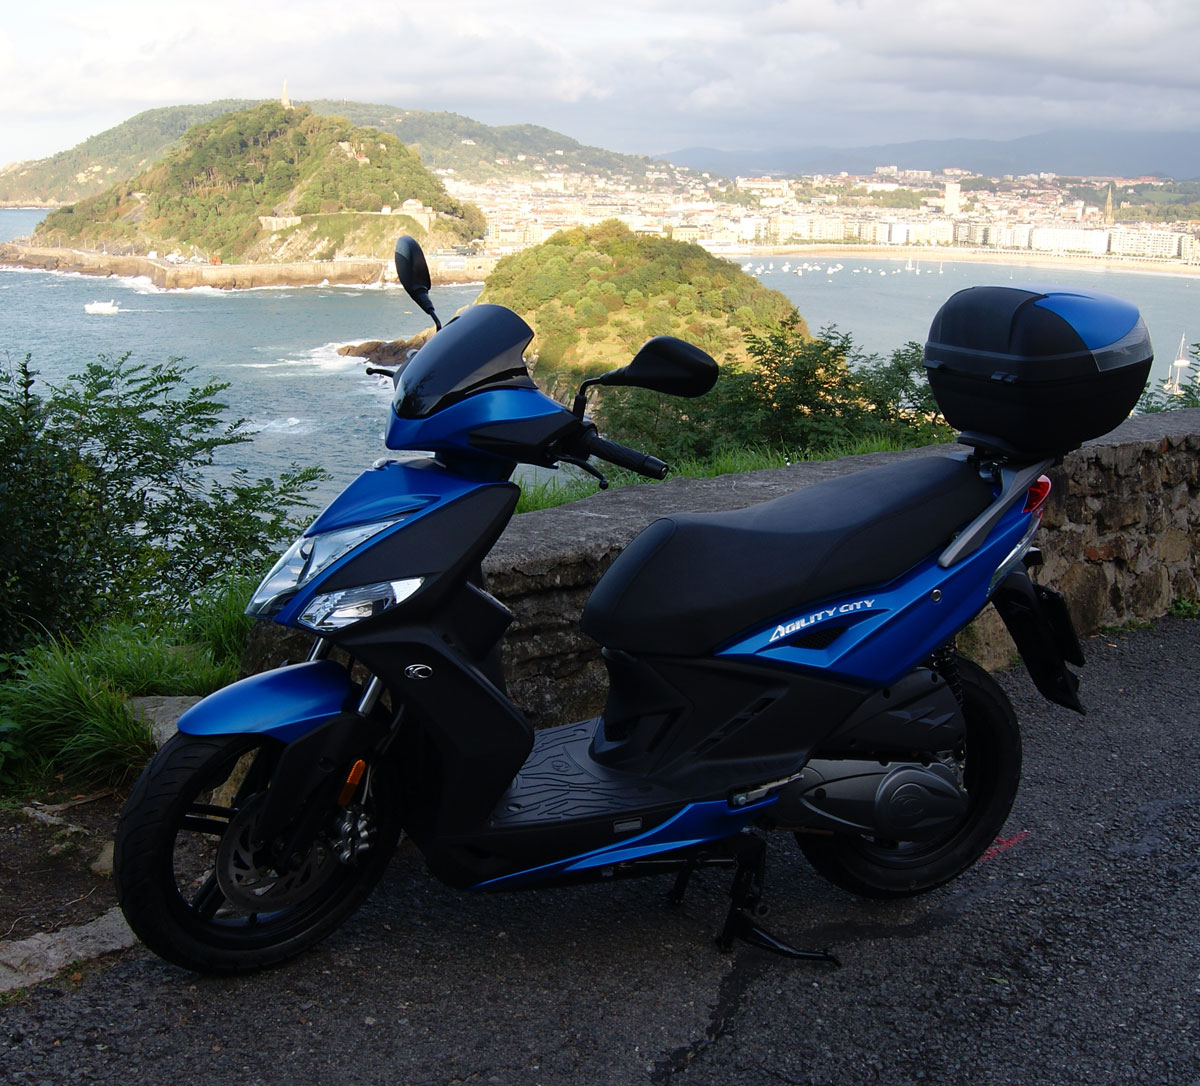 Location de motos  Kymco Agility City 125 cc